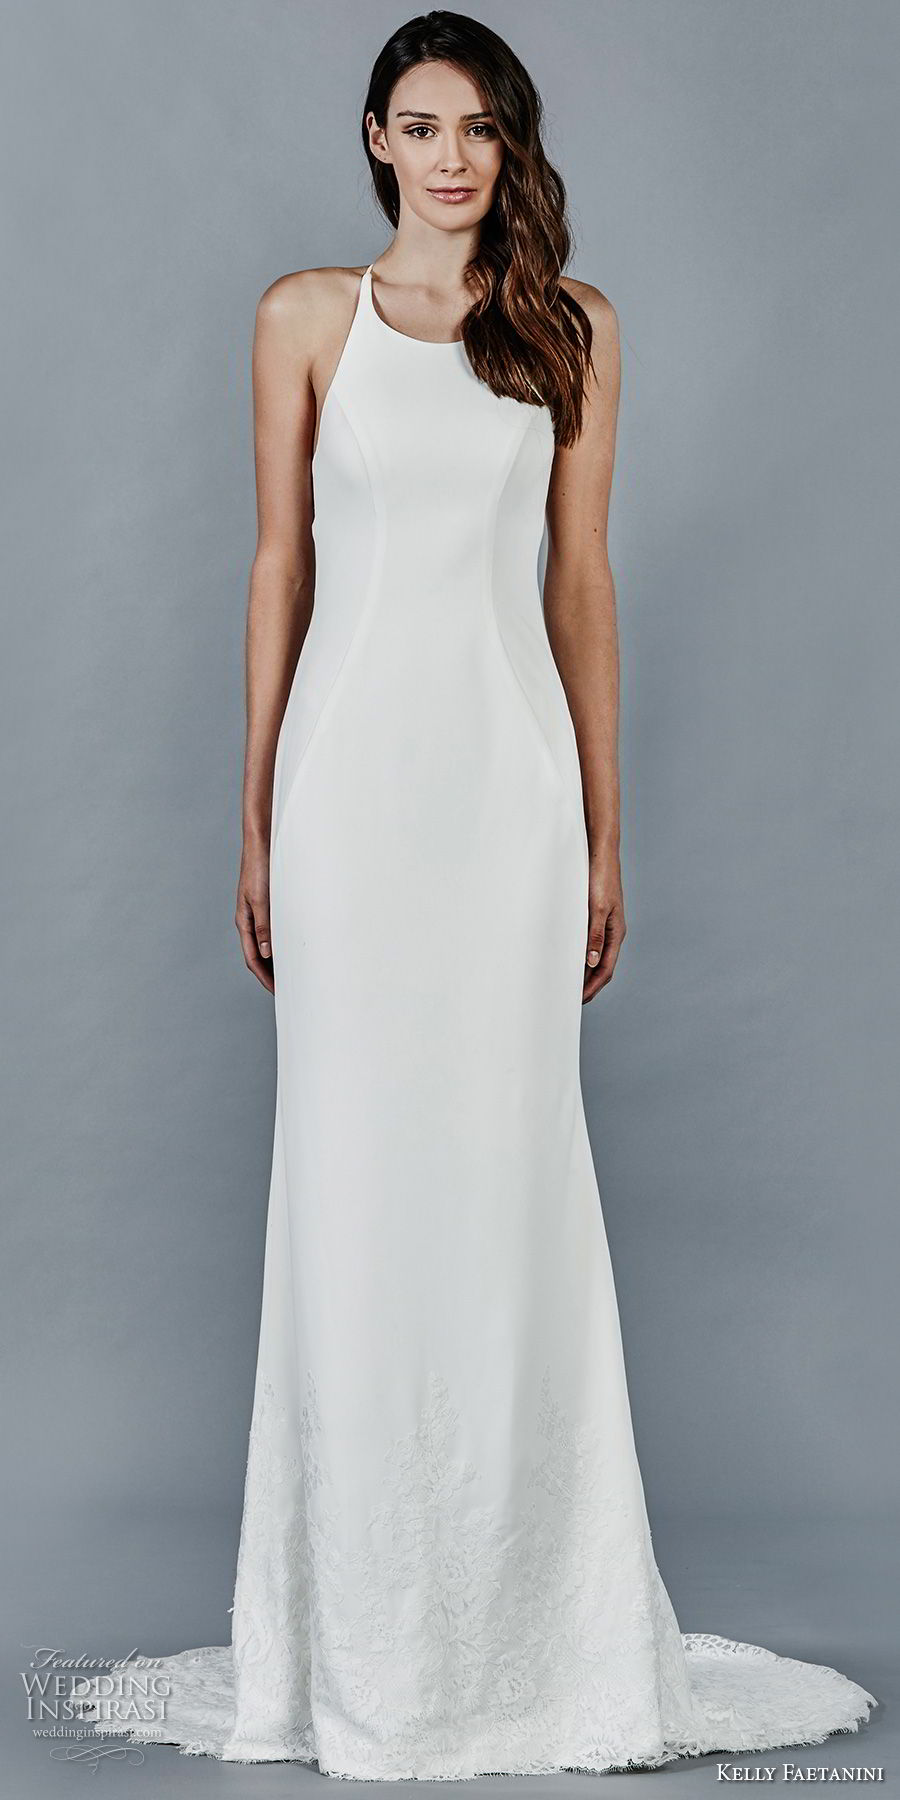 kelly faetanini fall 2018 bridal sleeveless halter jewel neck simple clean elegant sheath wedding dress lace back sweep train (13) mv